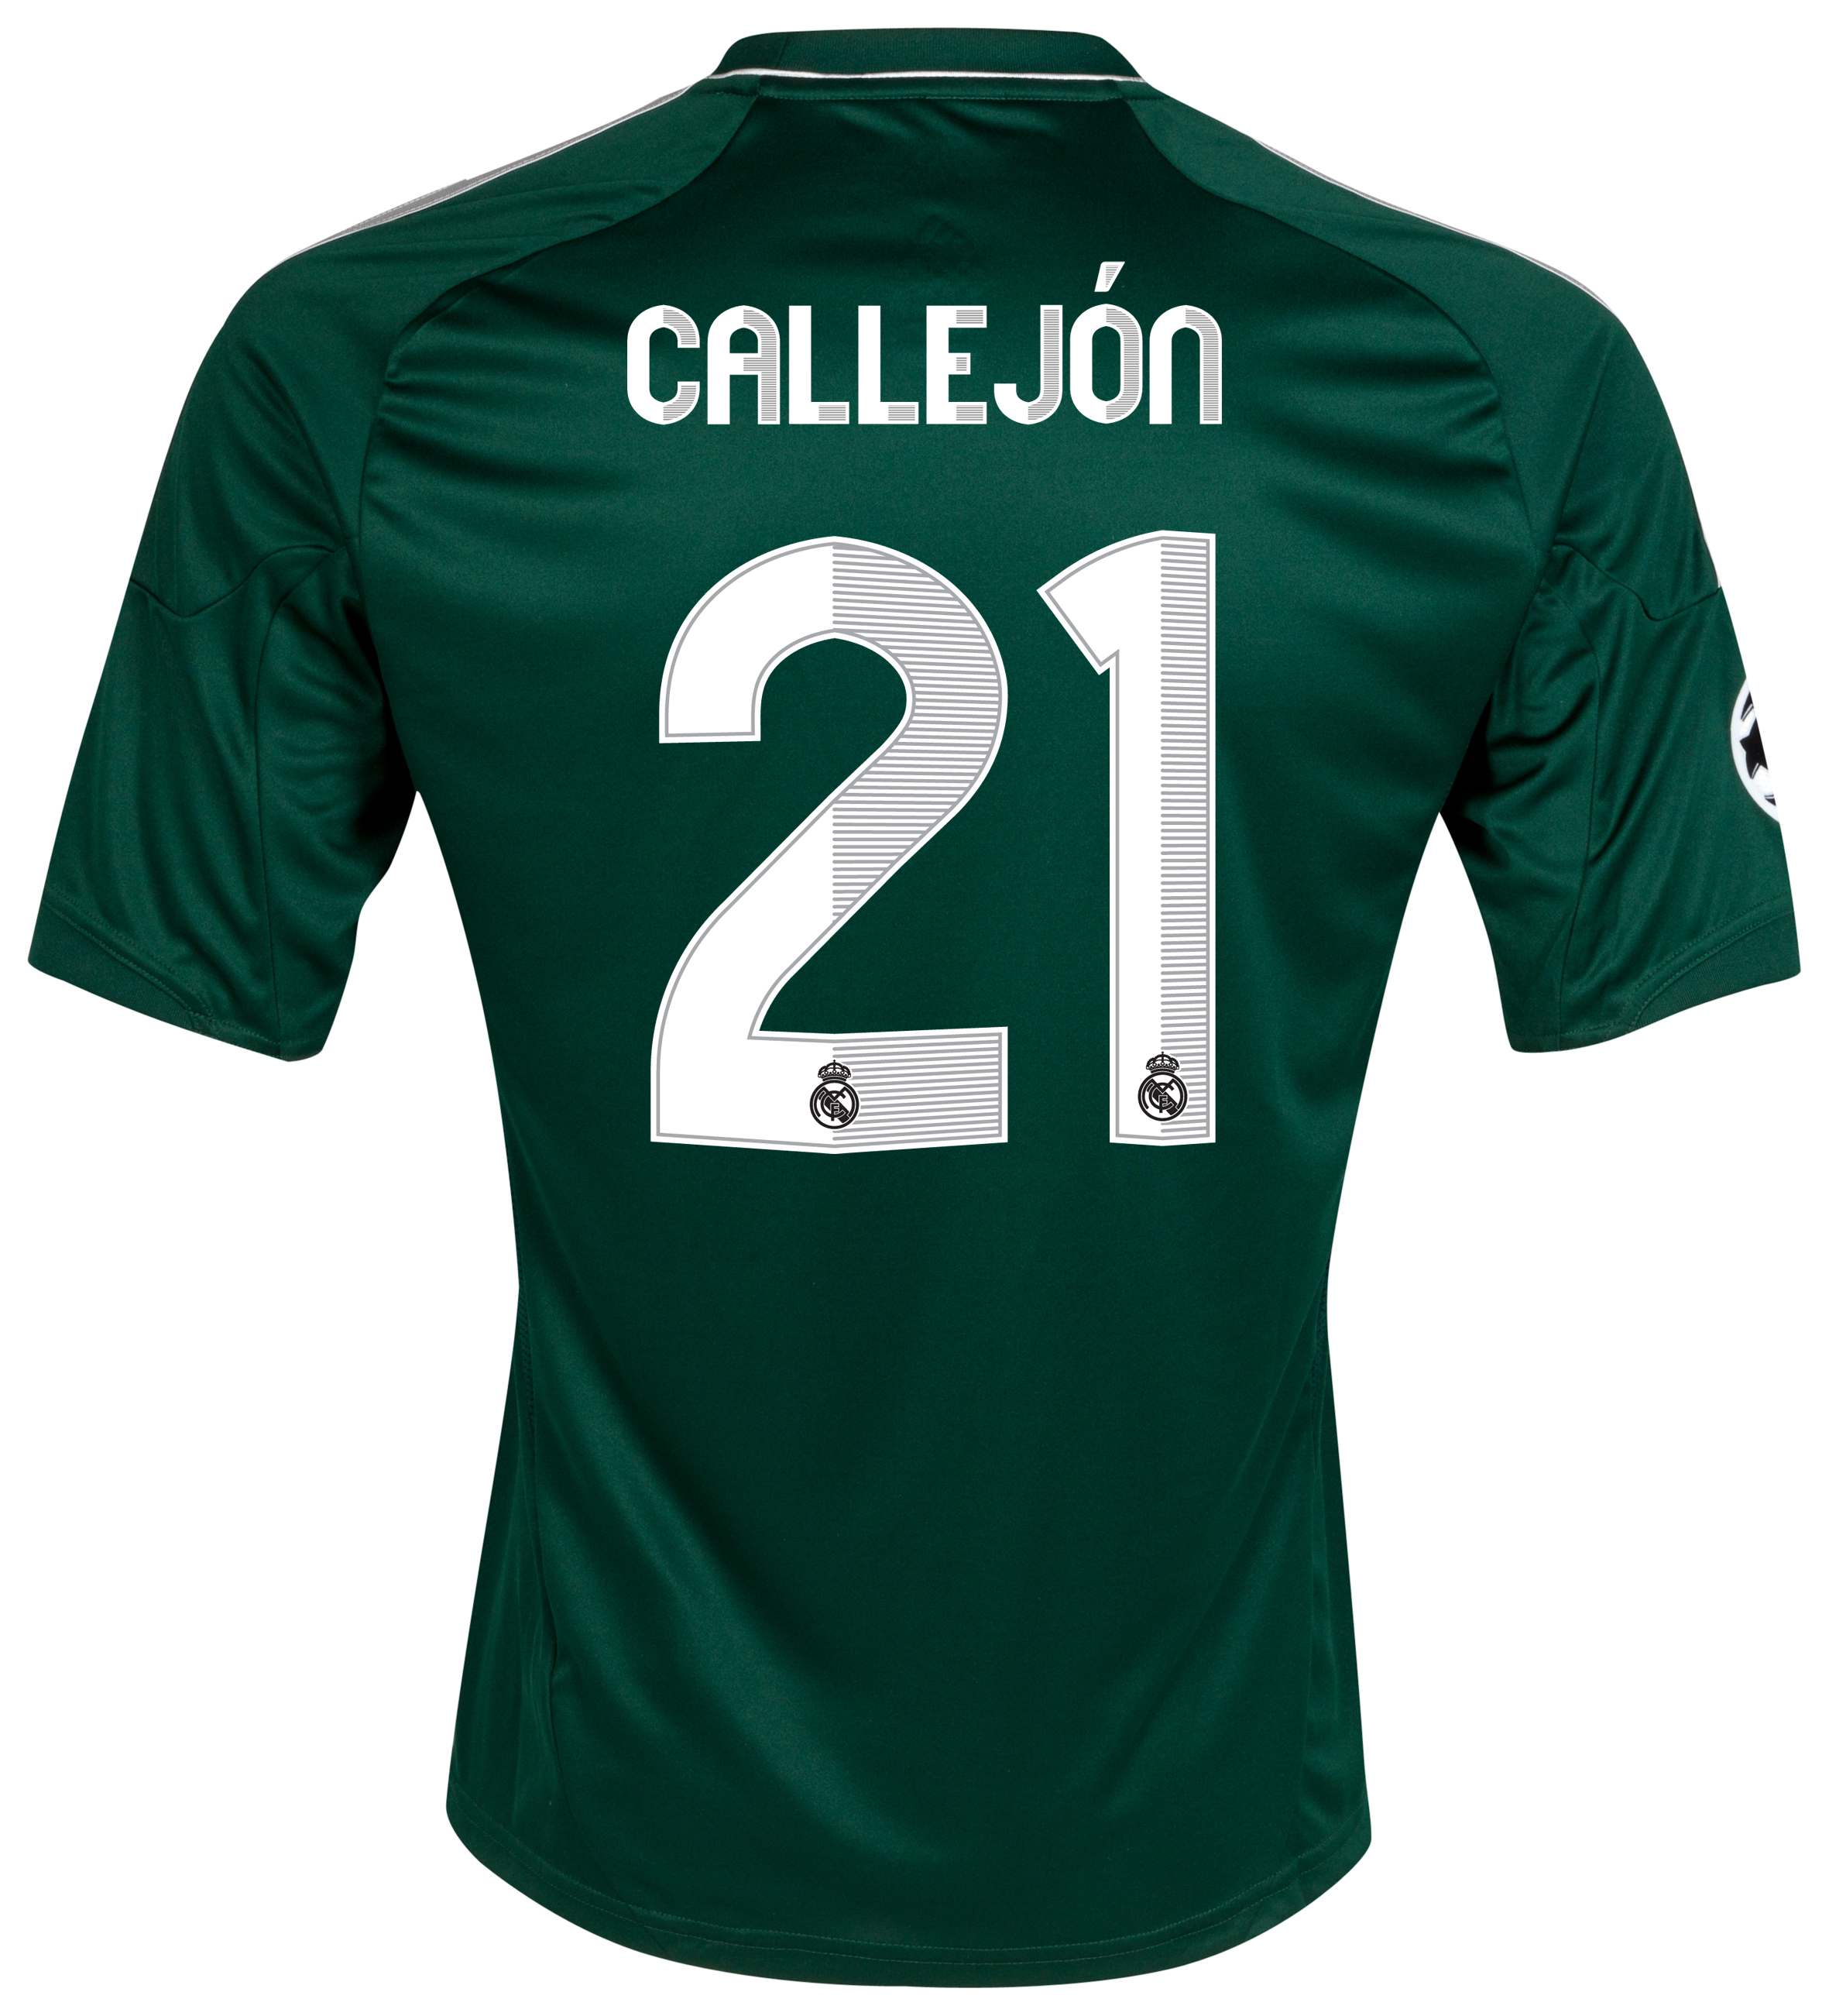 Real Madrid UEFA Champions League Third Shirt 2012/13 - Youths with Callejón 21 printing